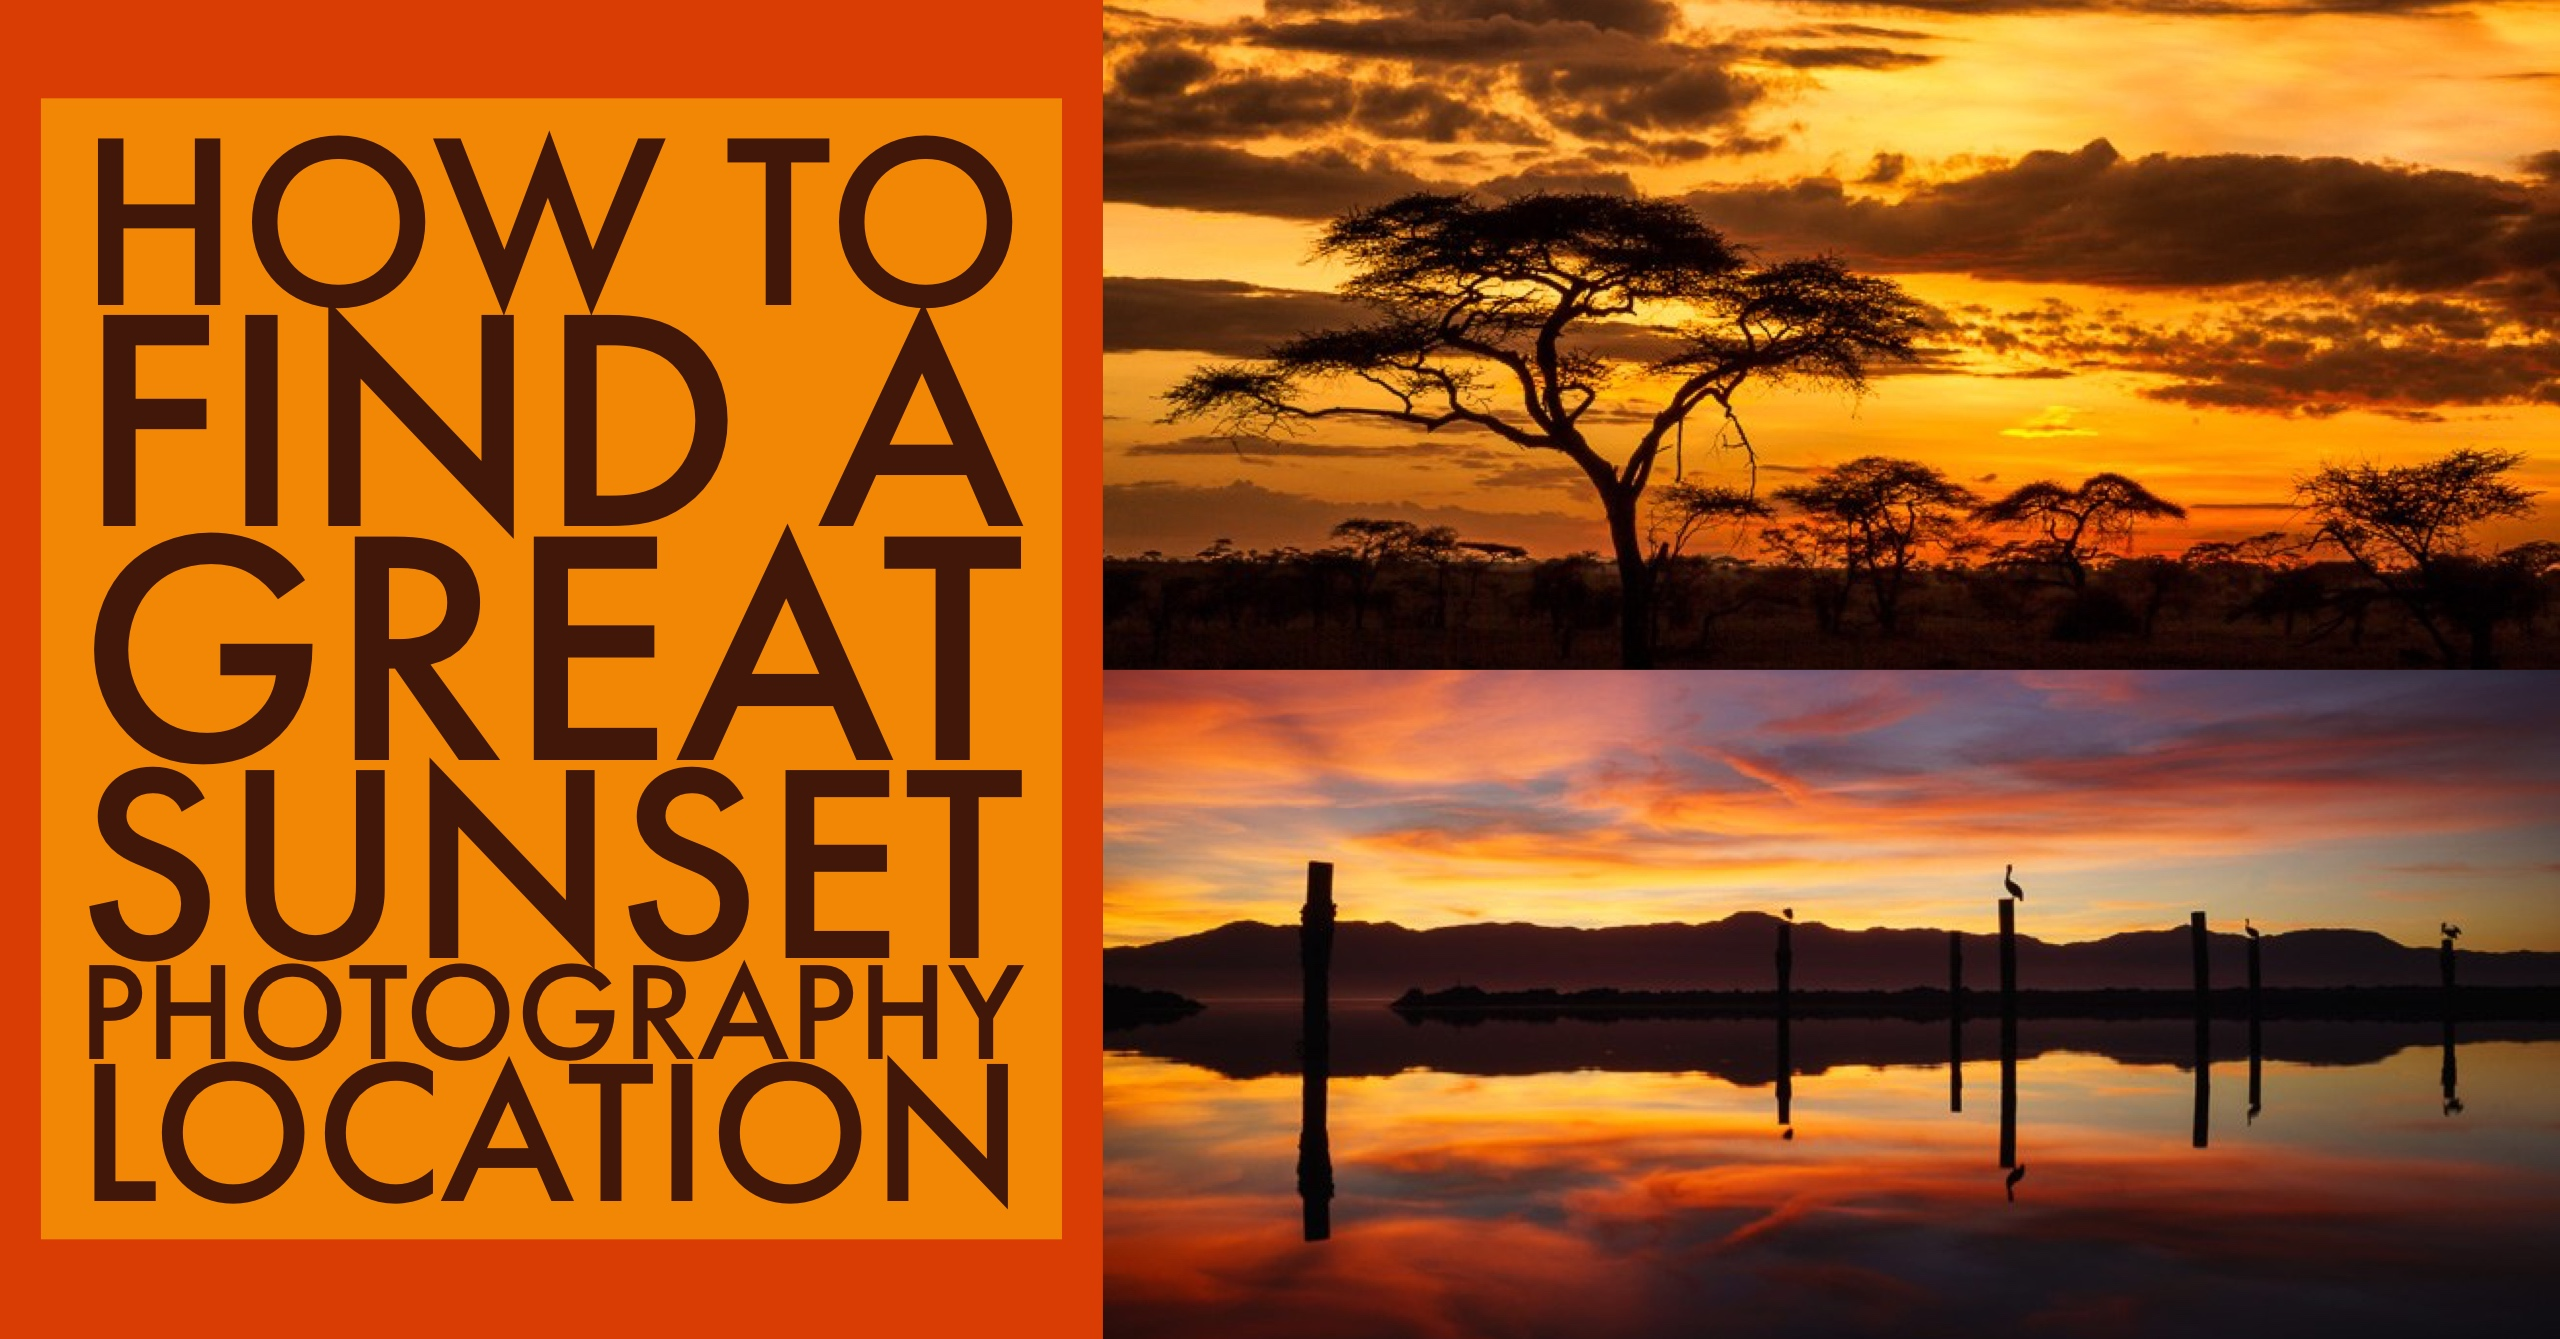 How to Find a Great Sunset Photography Location